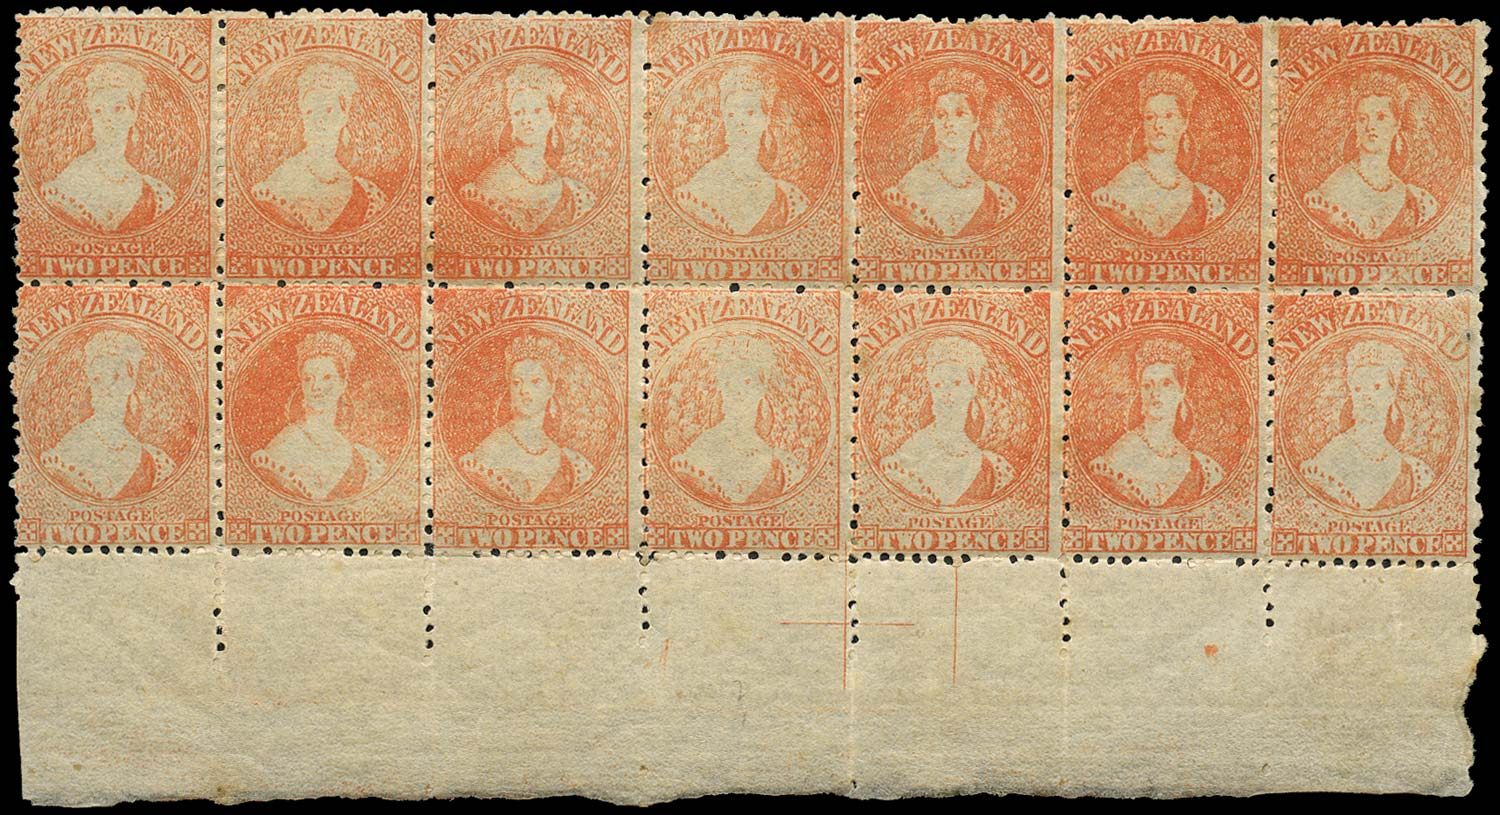 NEW ZEALAND 1873  SG138a Mint 2d vermilion no watermark perf 12½ retouched